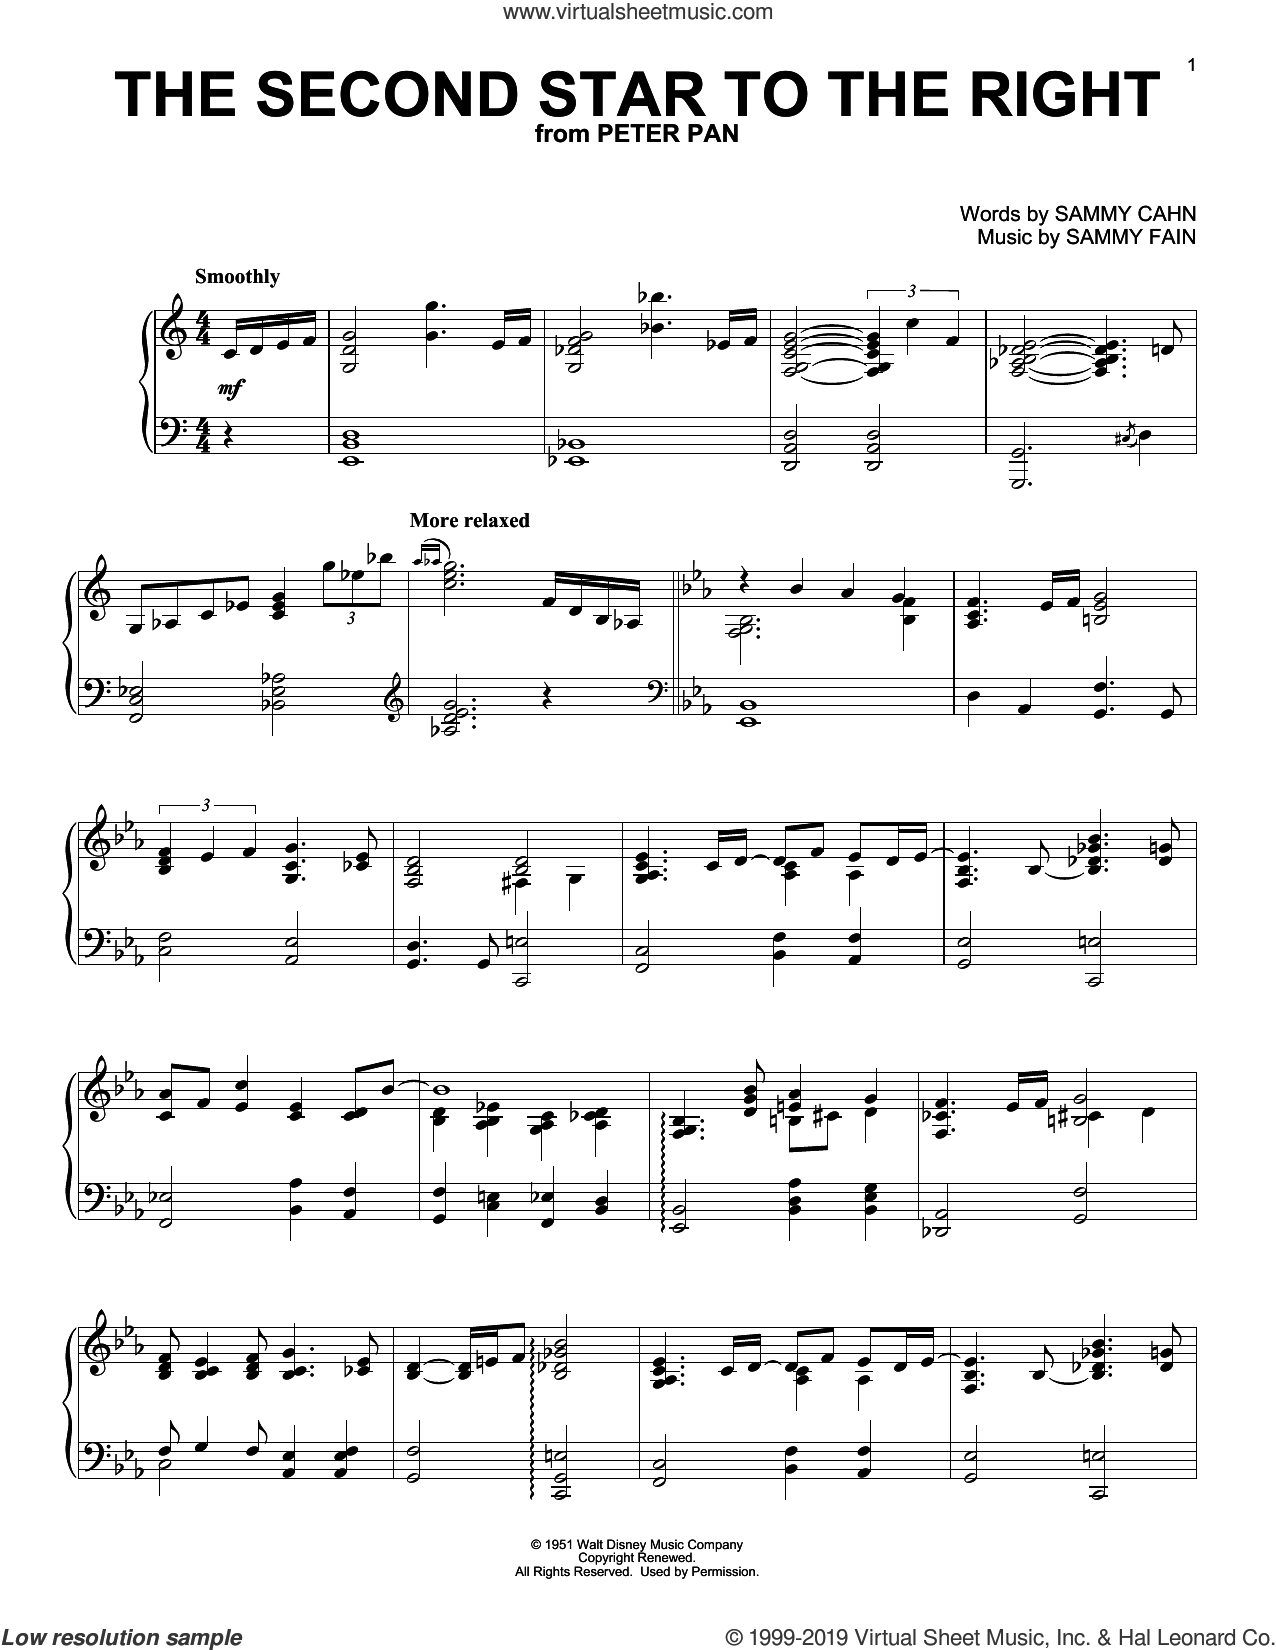 The Second Star To The Right (from Peter Pan) sheet music for piano solo by Sammy Fain and Sammy Cahn, intermediate skill level